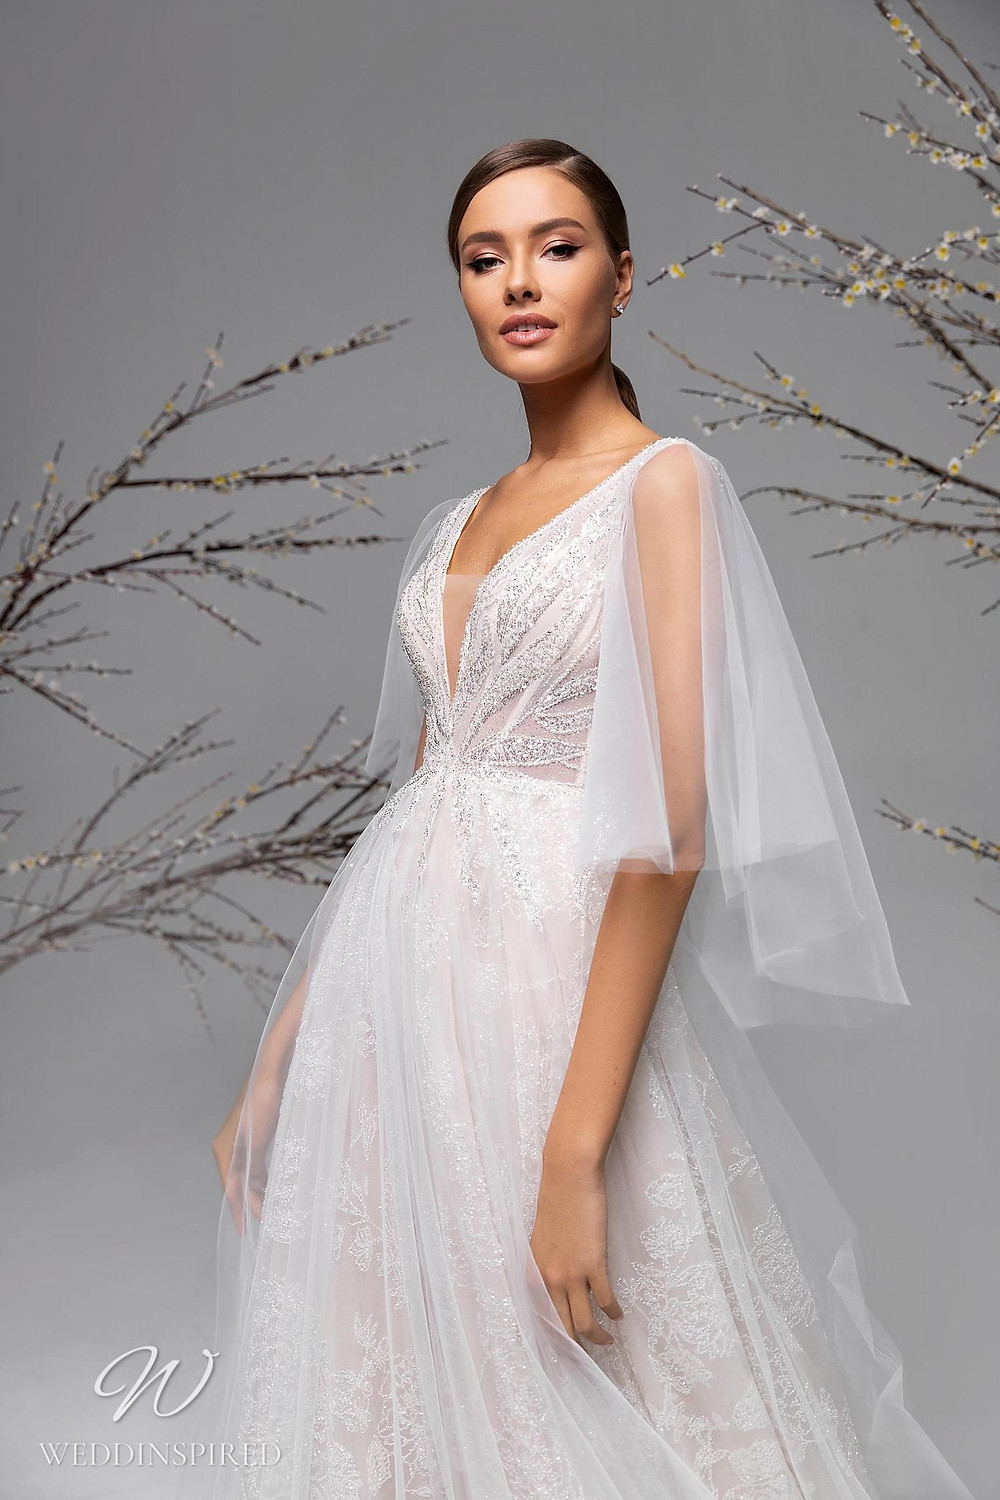 A Ricca Sposa lace and mesh A-line wedding dress